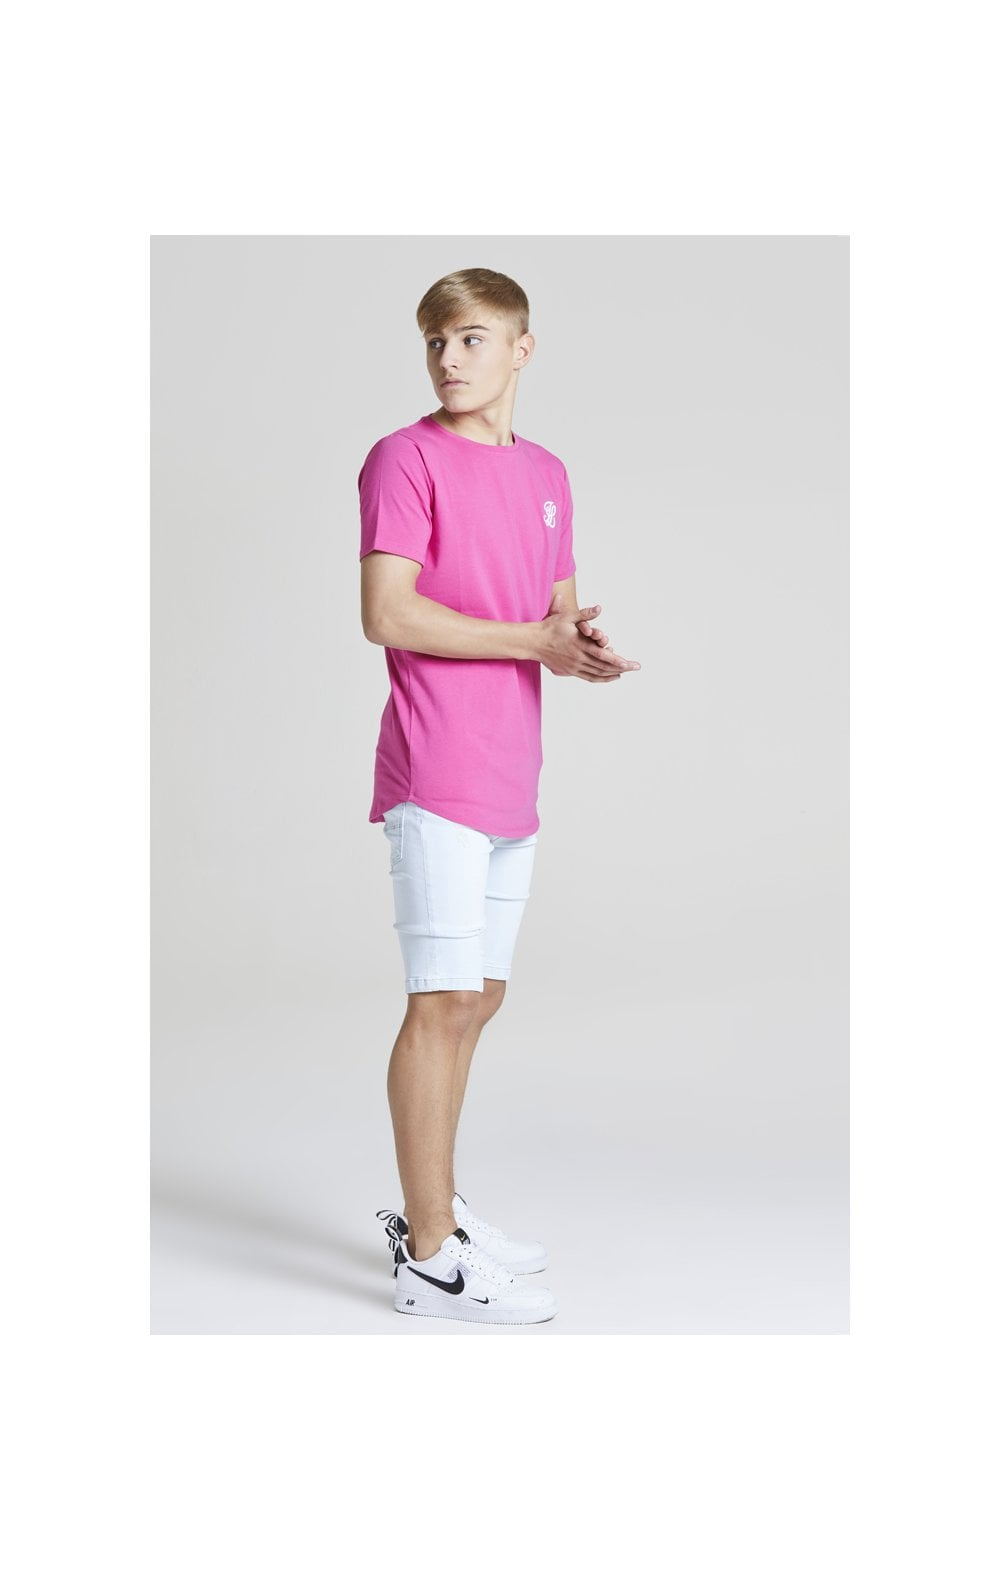 Illusive London Core T-Shirt - Rosa (3)